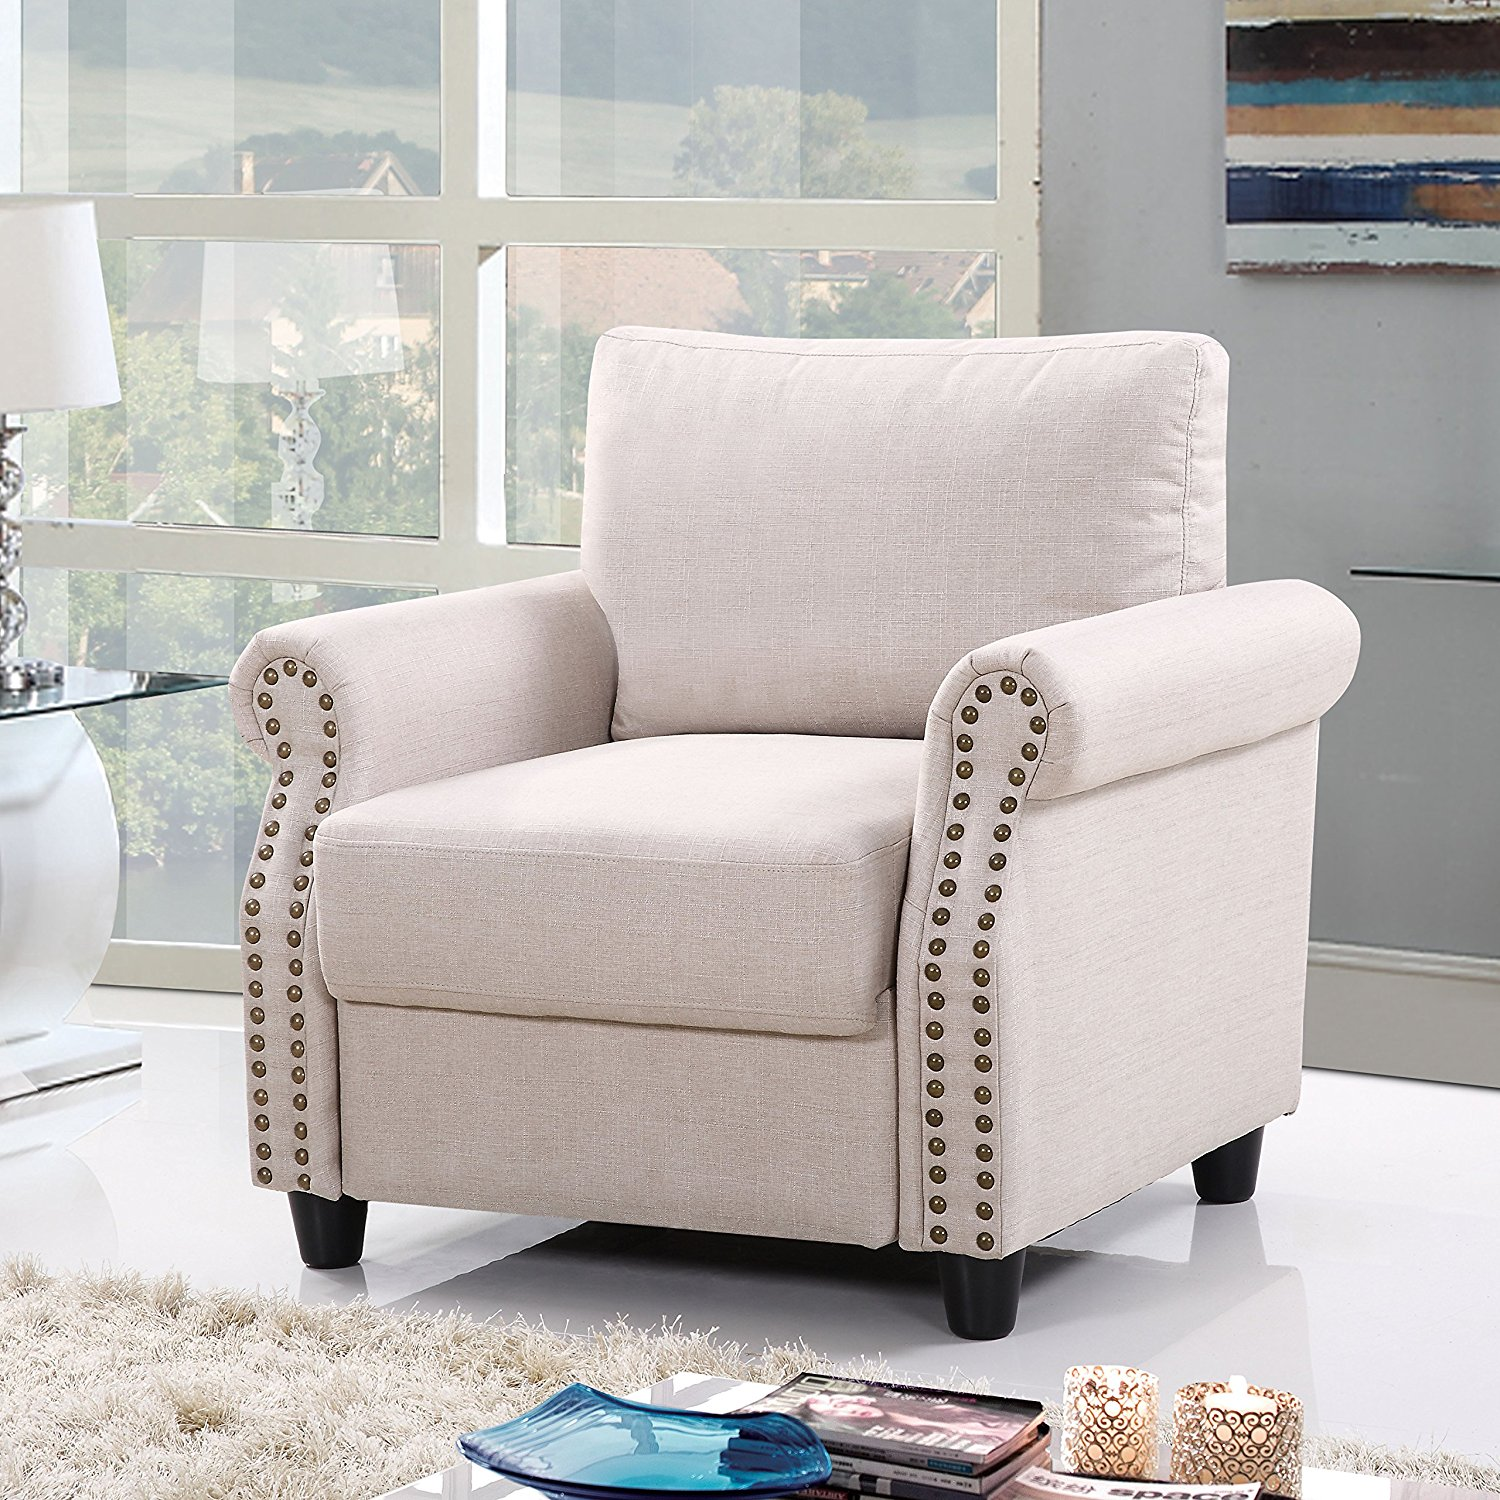 Best Living Room Chairs Reviews by Fitzgeraldmuseum.